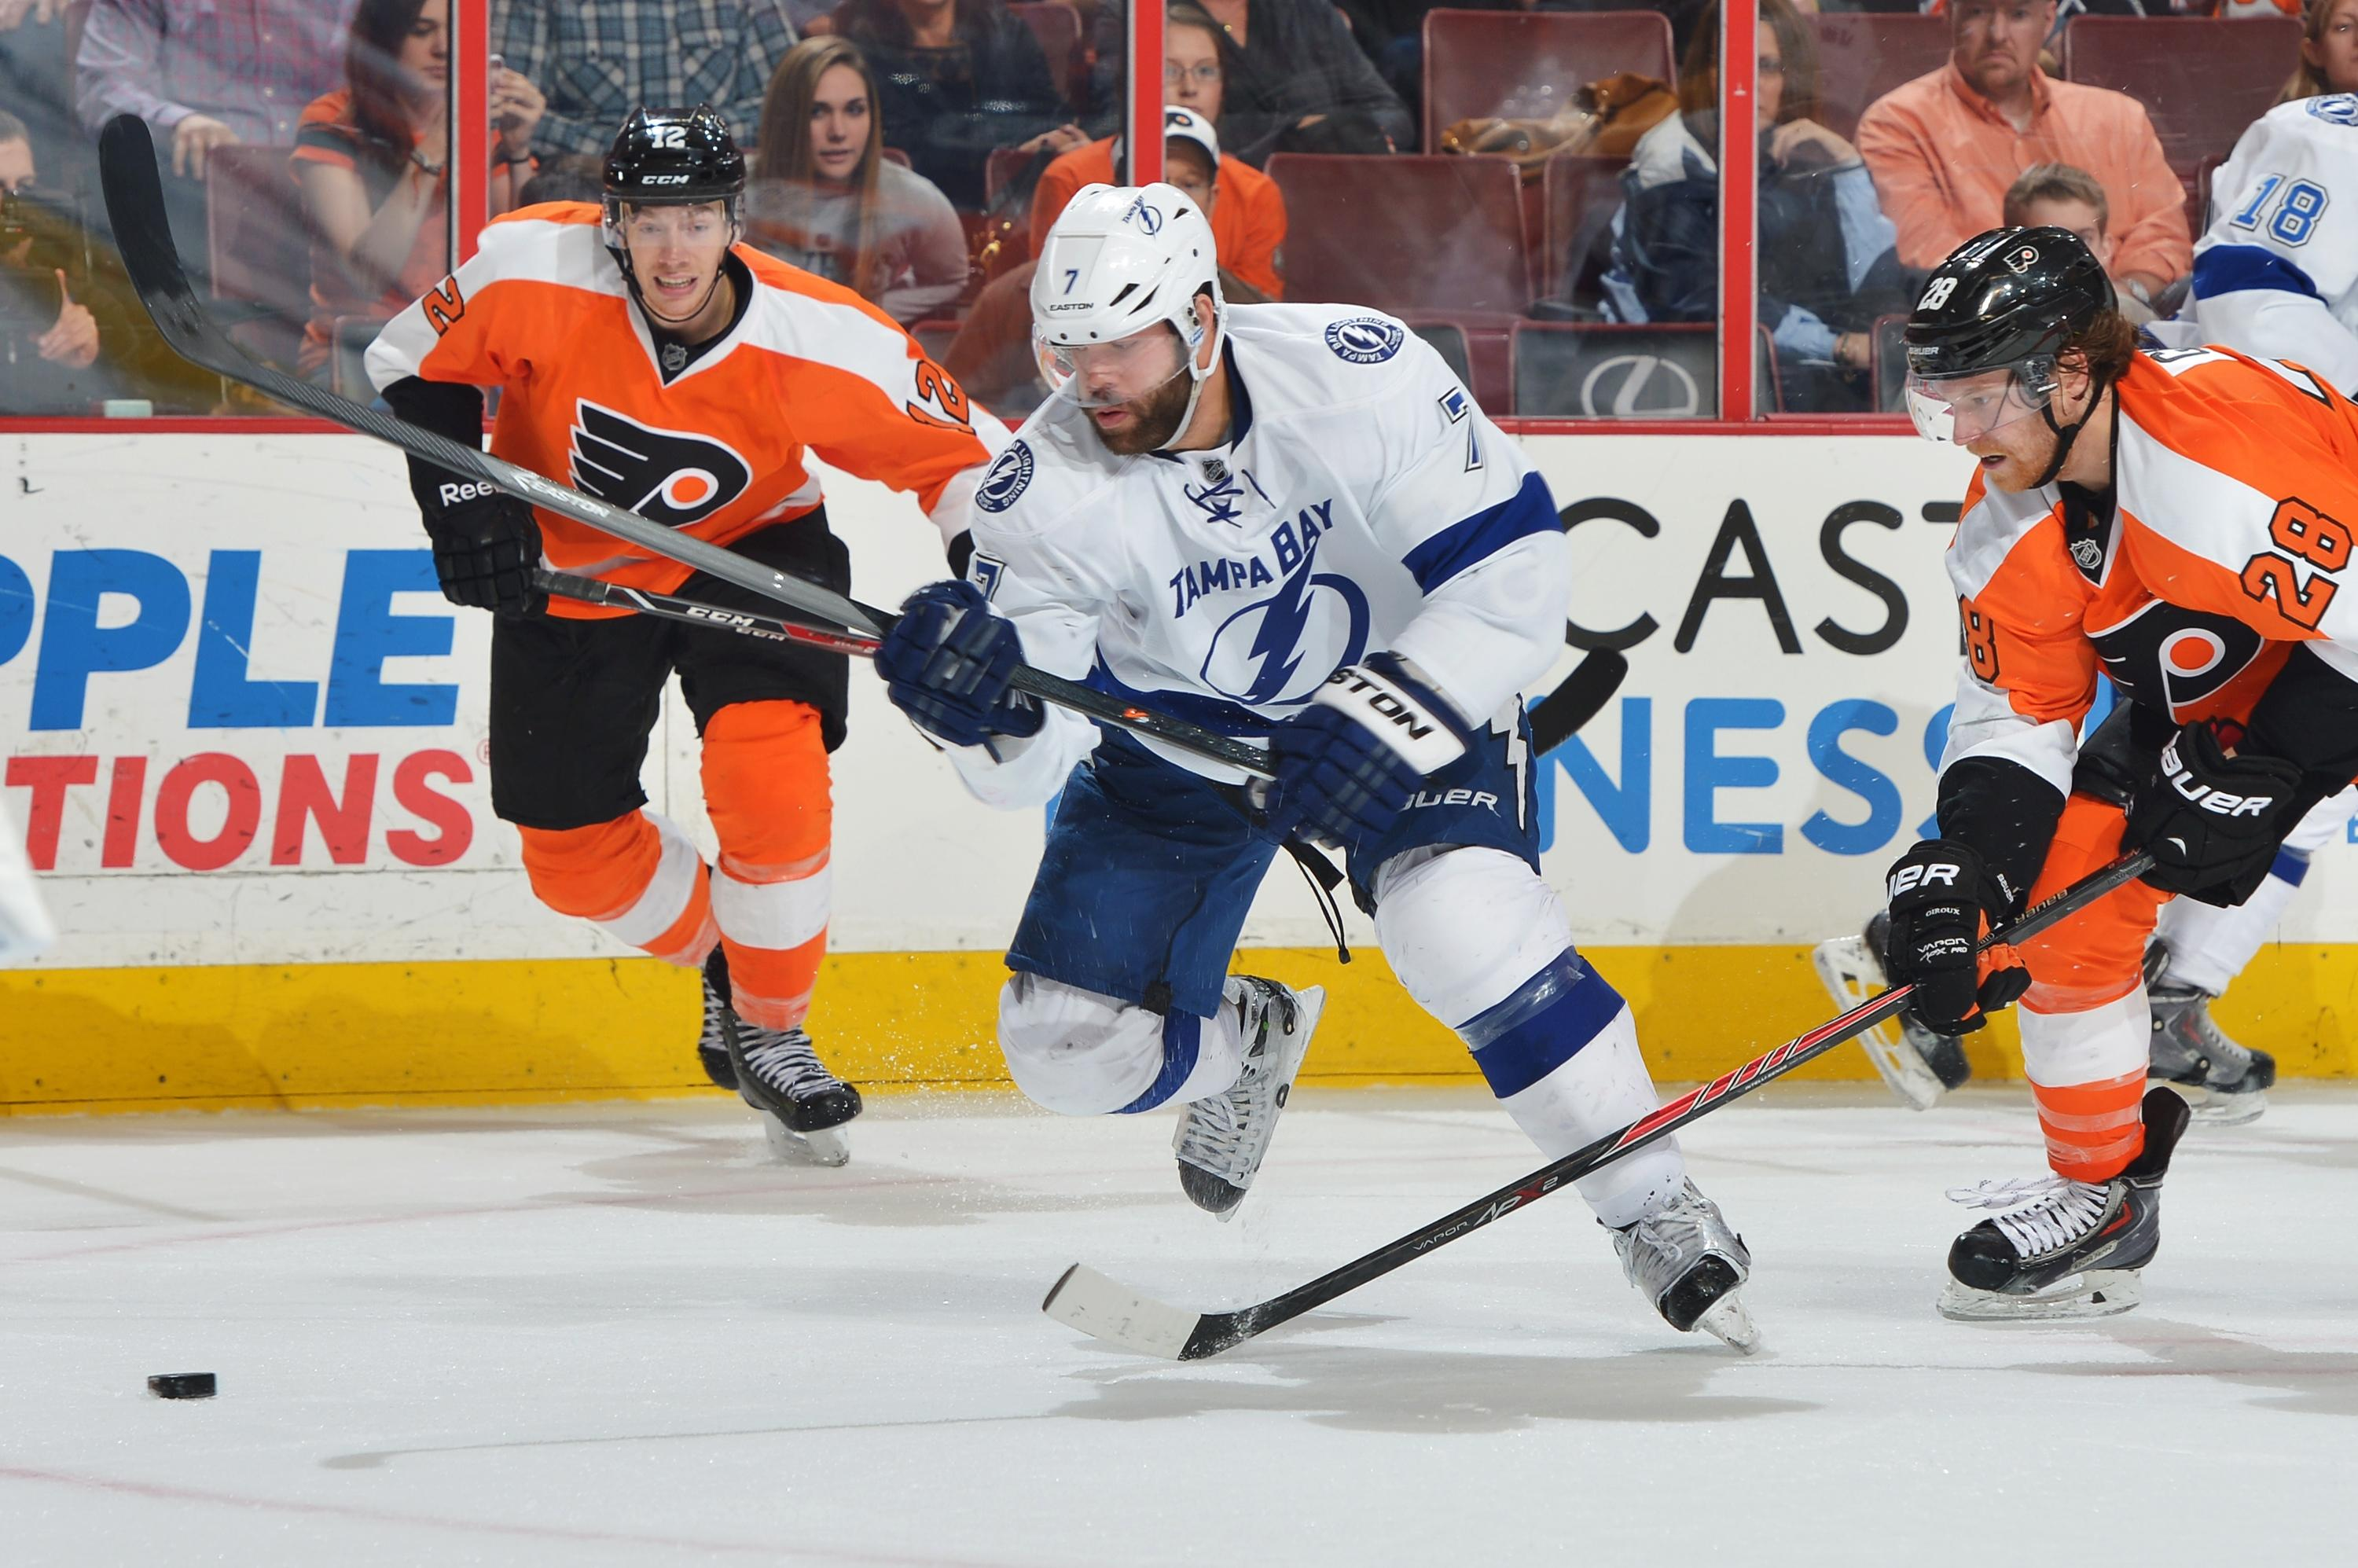 Lightning make big moves: trade Connolly, Gudas and acquire Coburn in different deals